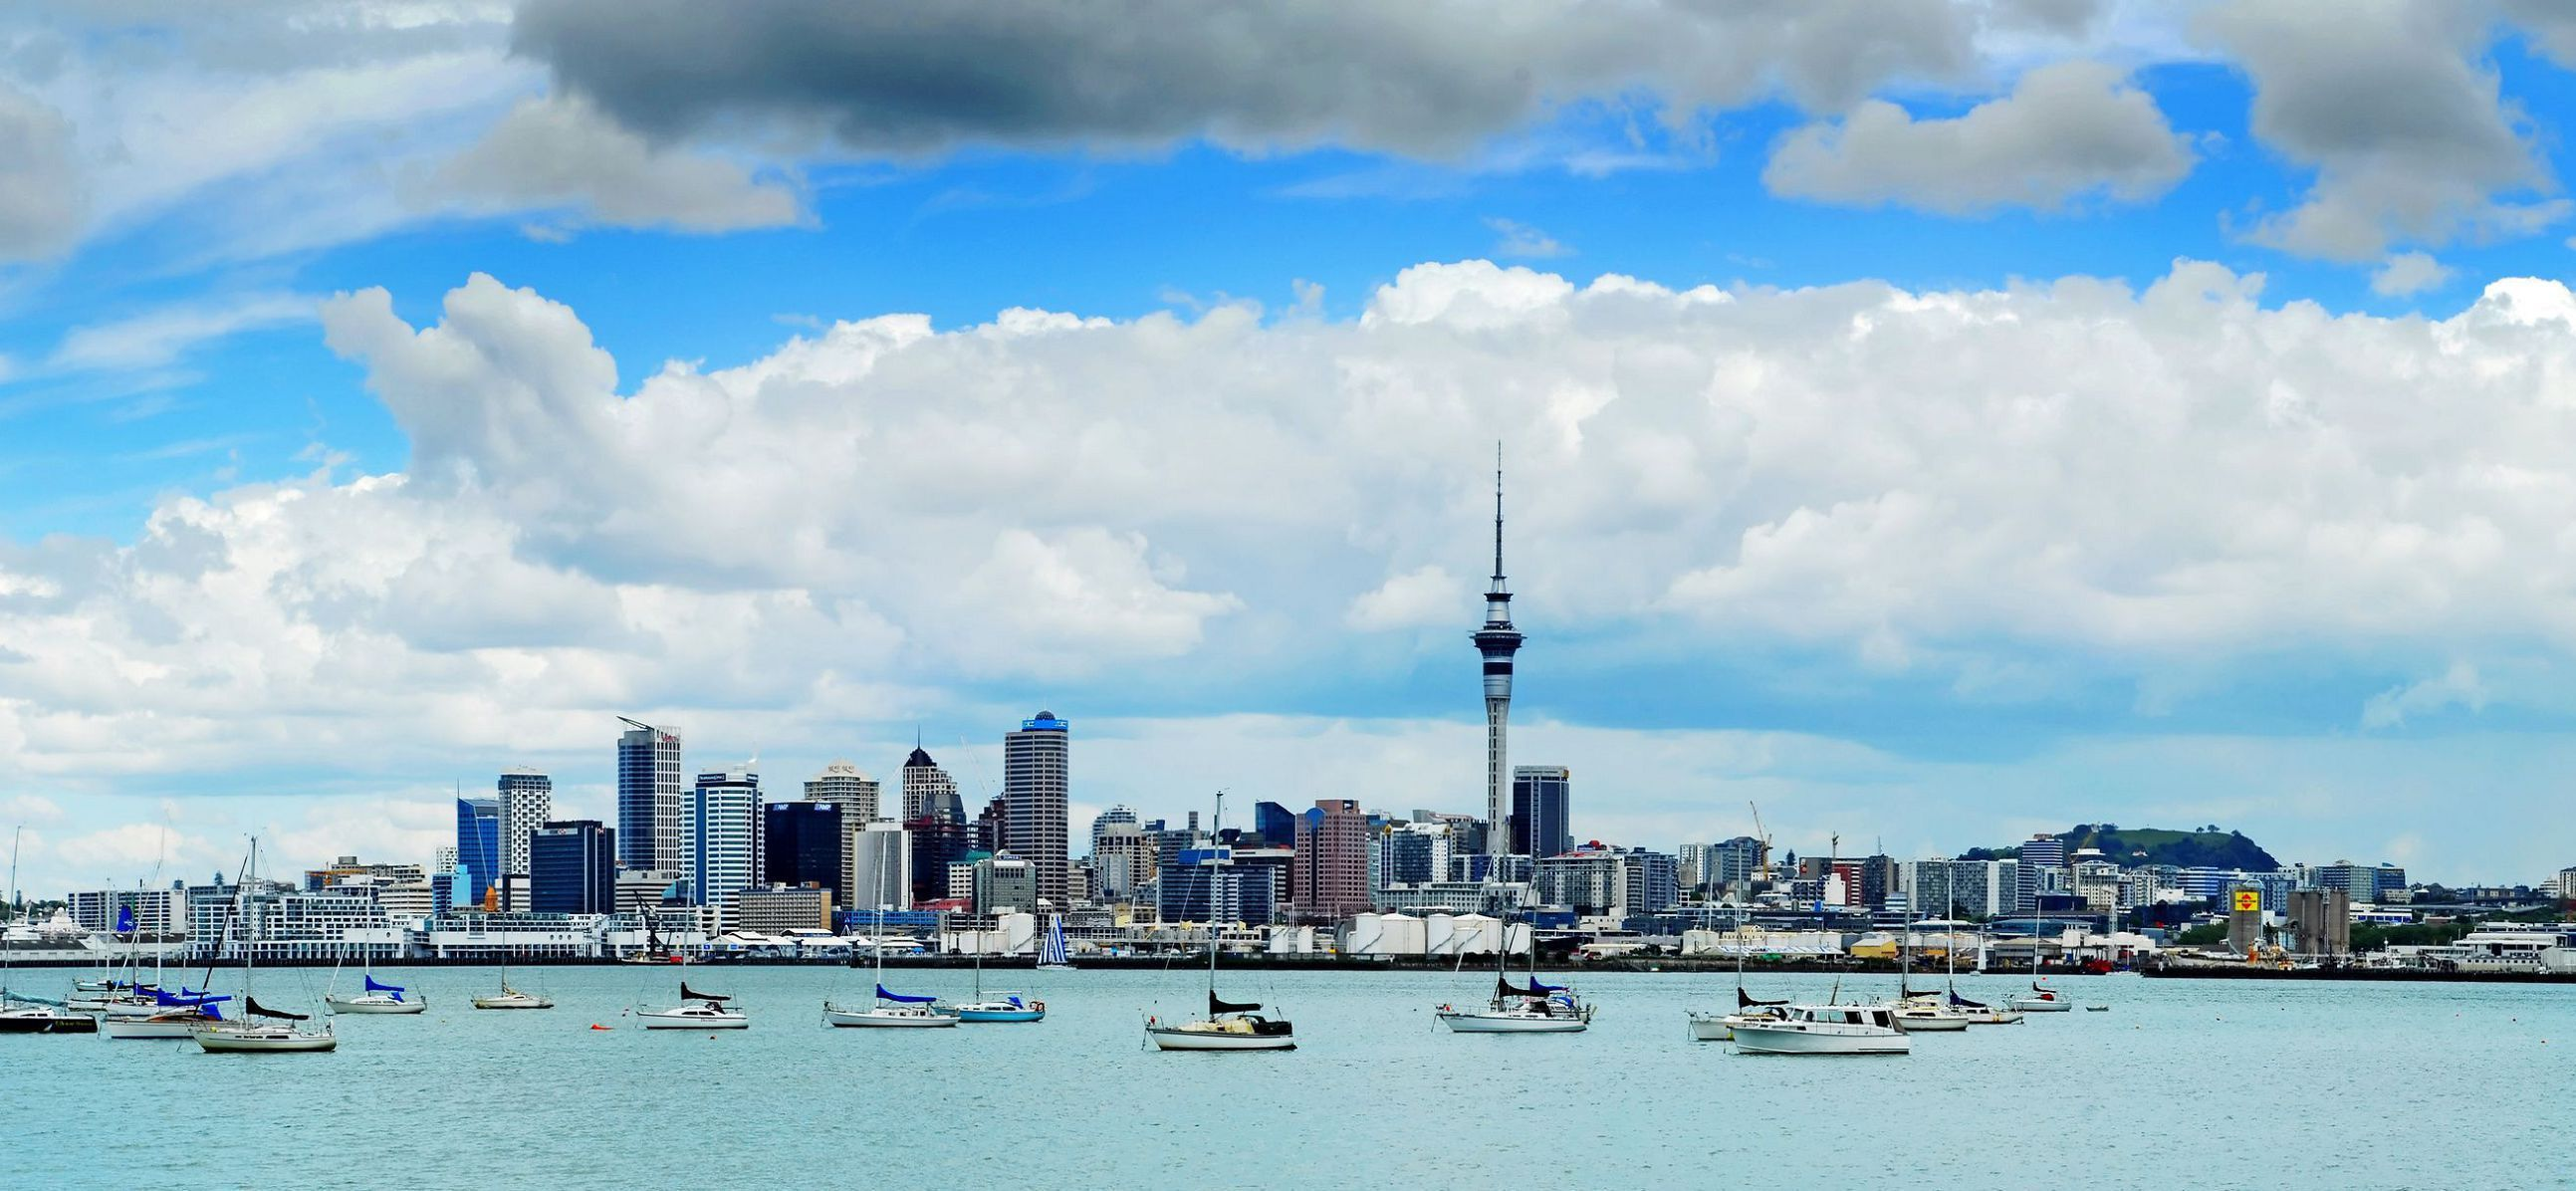 Auckland Computer Wallpaper